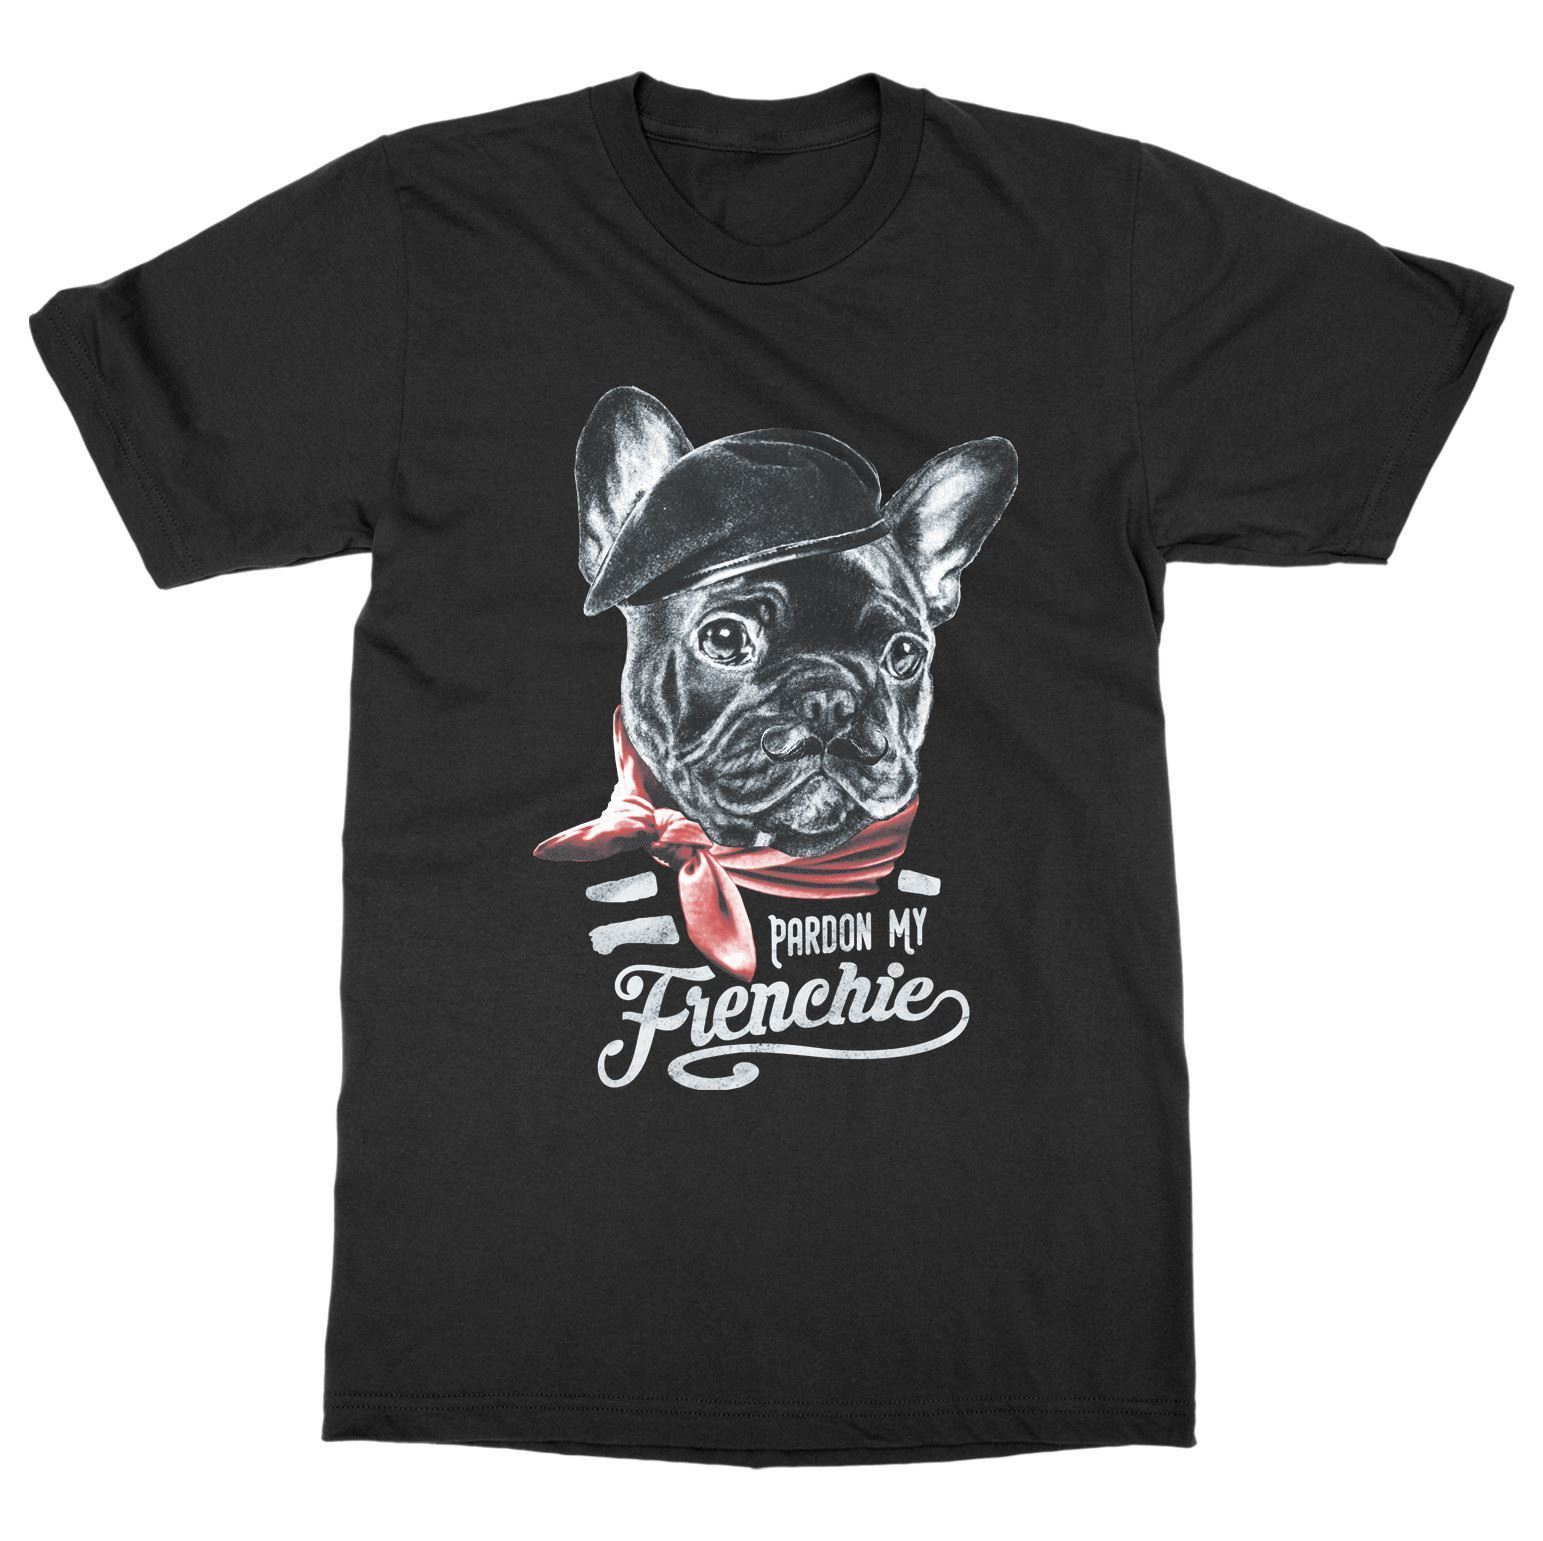 Pardon My frenchie футболка Французский бульдог щенок Pet